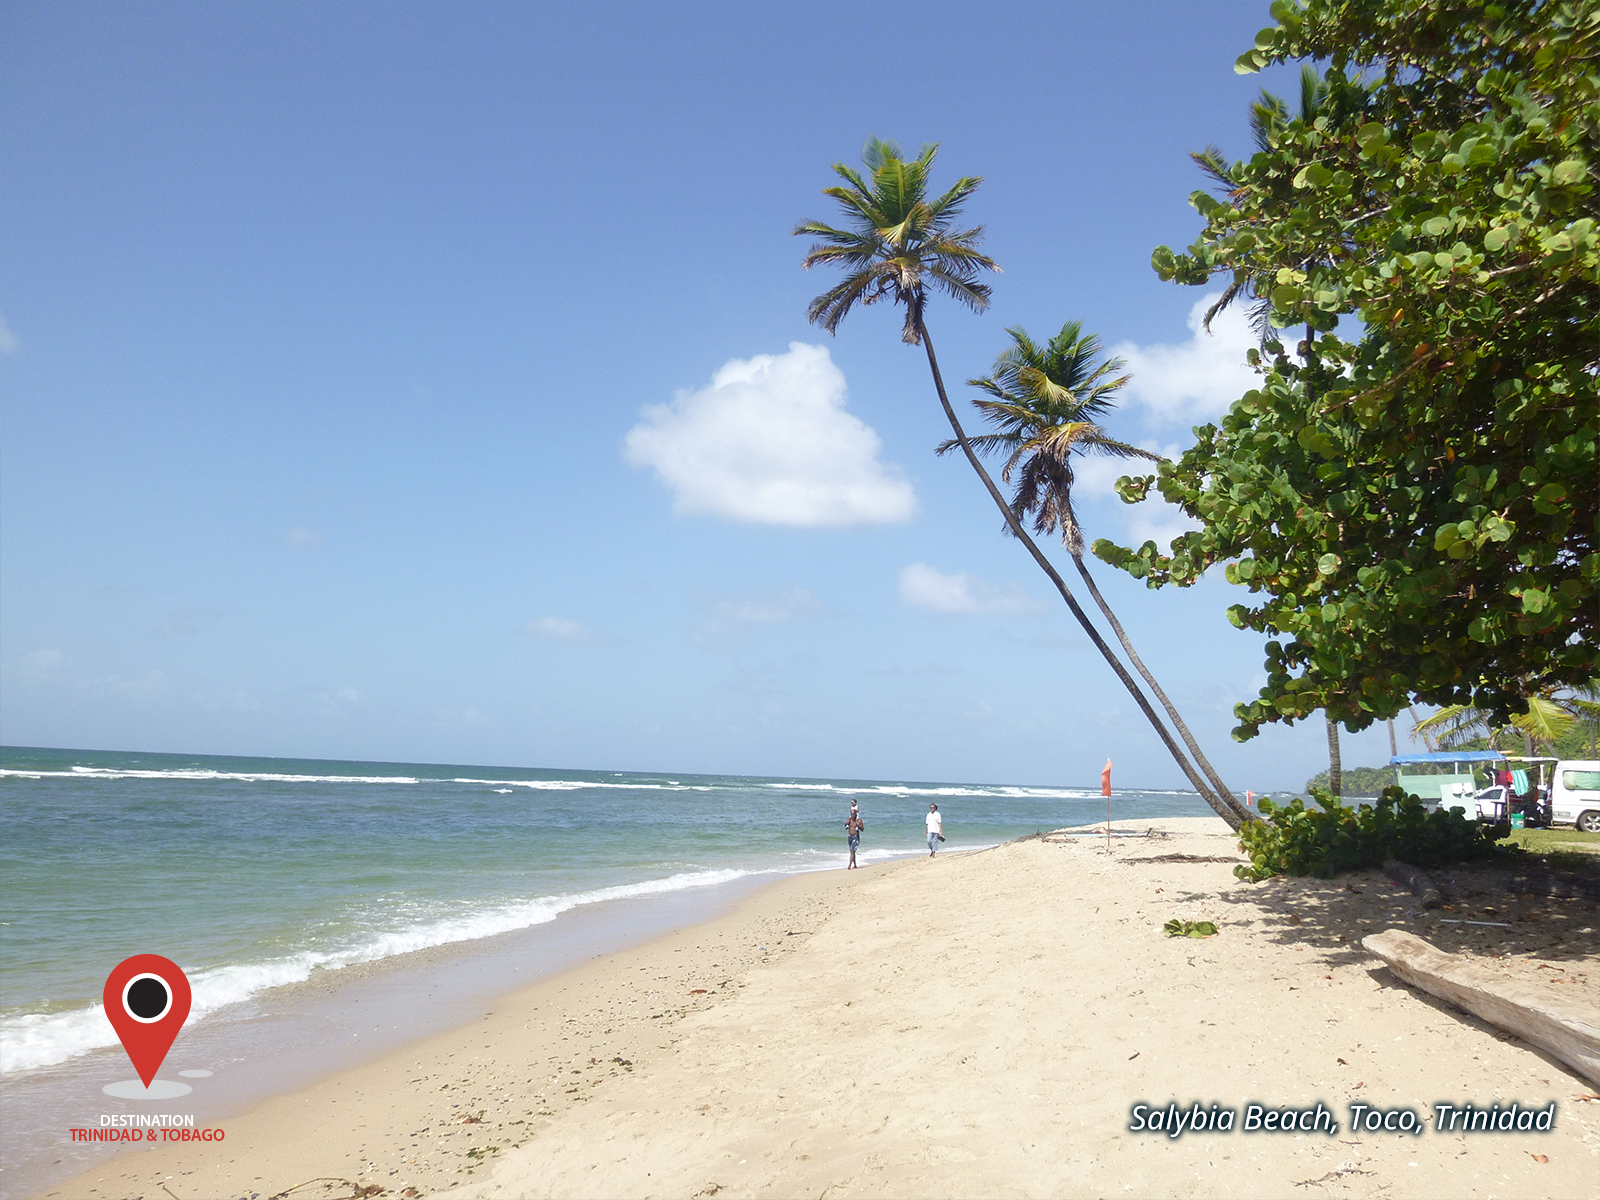 10 Best Things to Do in Trinidad & Tobago   Trinidad and